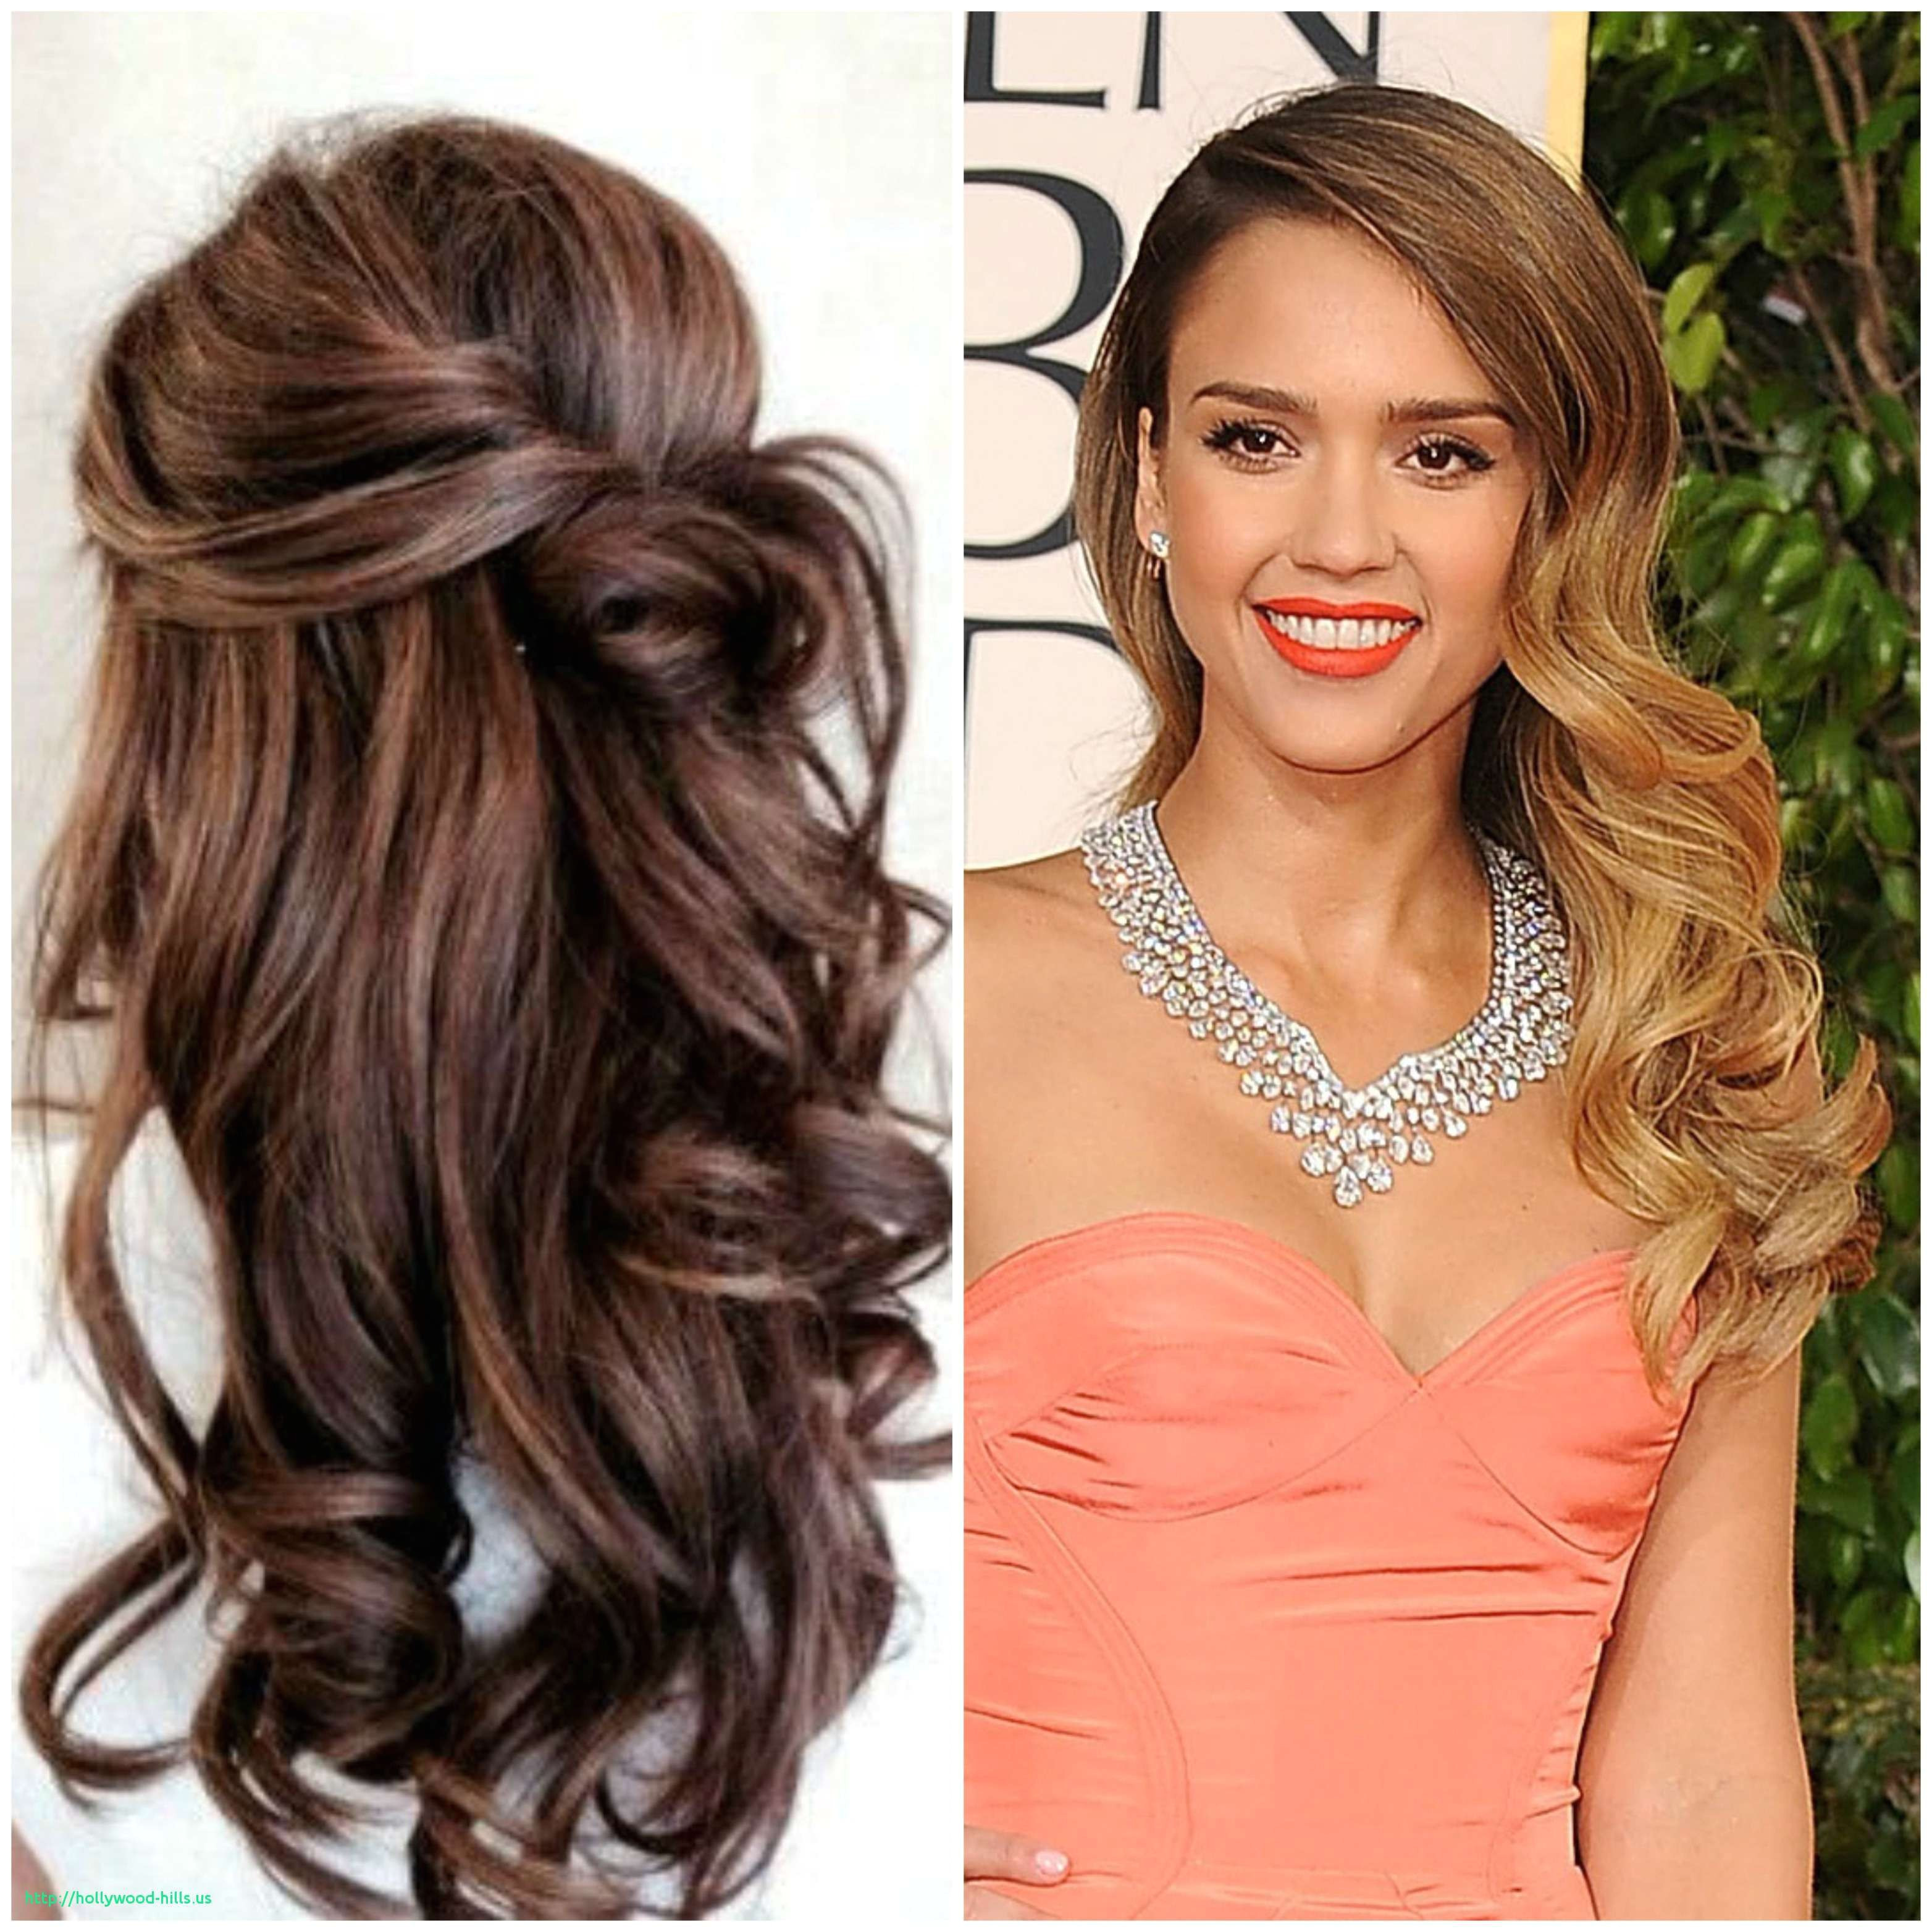 Easy Hairstyles for Short Hair In Summer Inspirational Summer Hairstyles Short Hair 2015 – Uternity